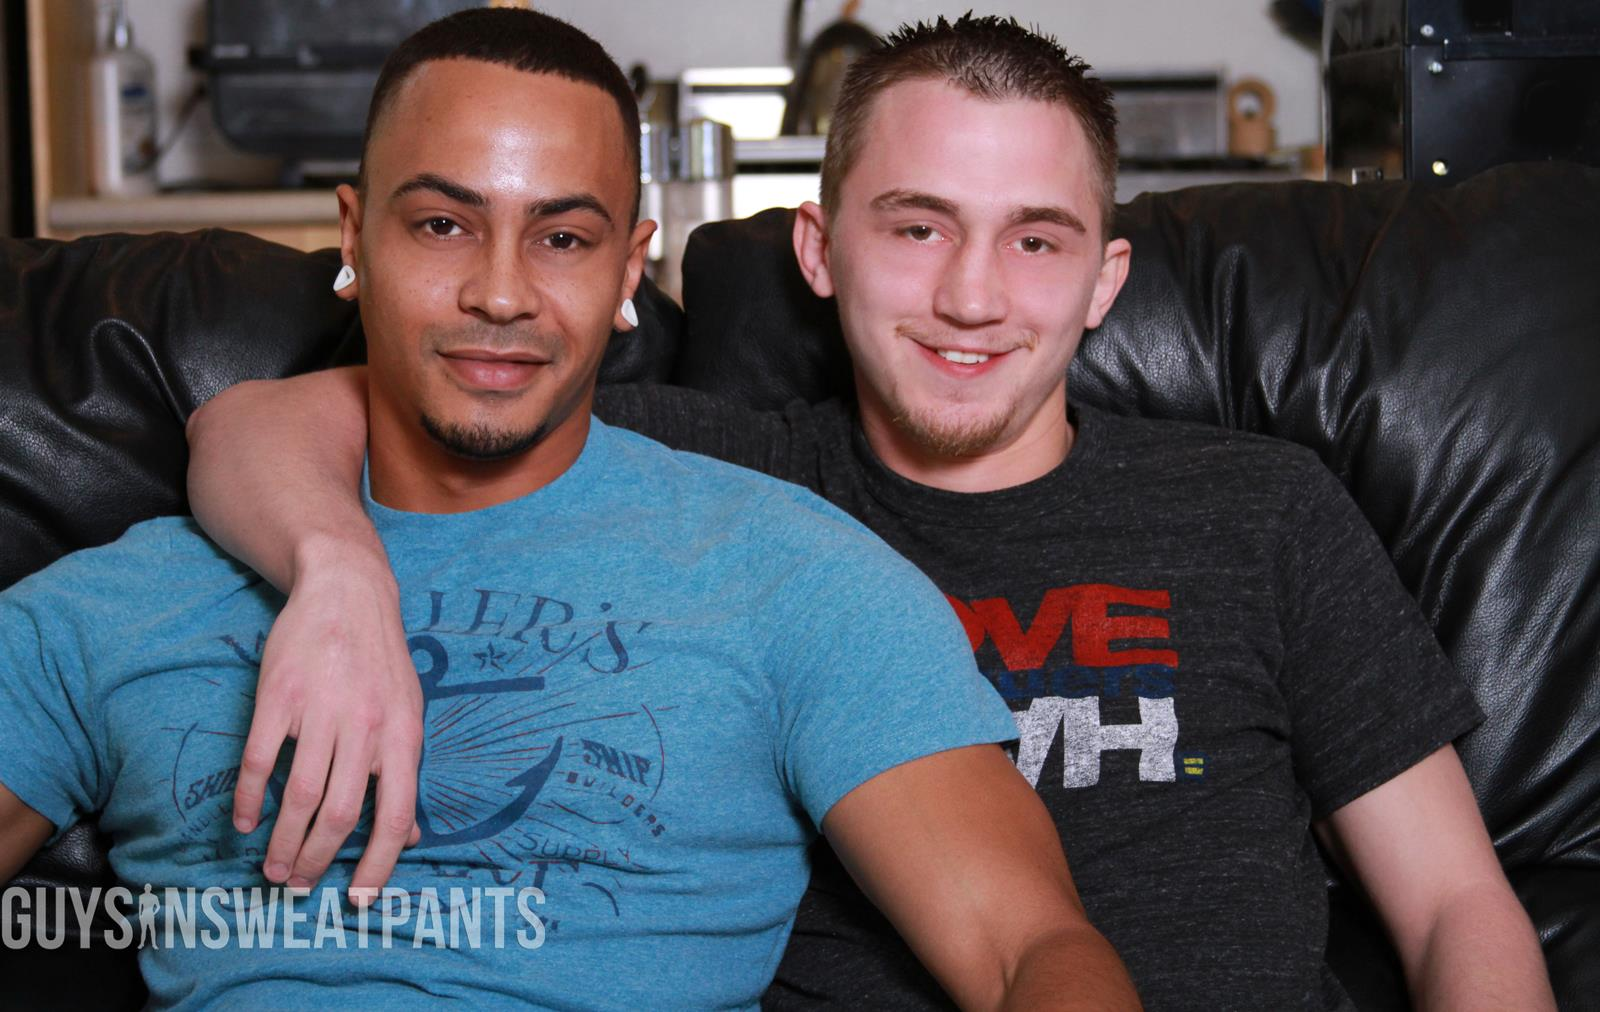 Guys In Sweatpants Ezekiel Stone and Dillon Hays Interracial bareback fucking Amateur Gay Porn 13